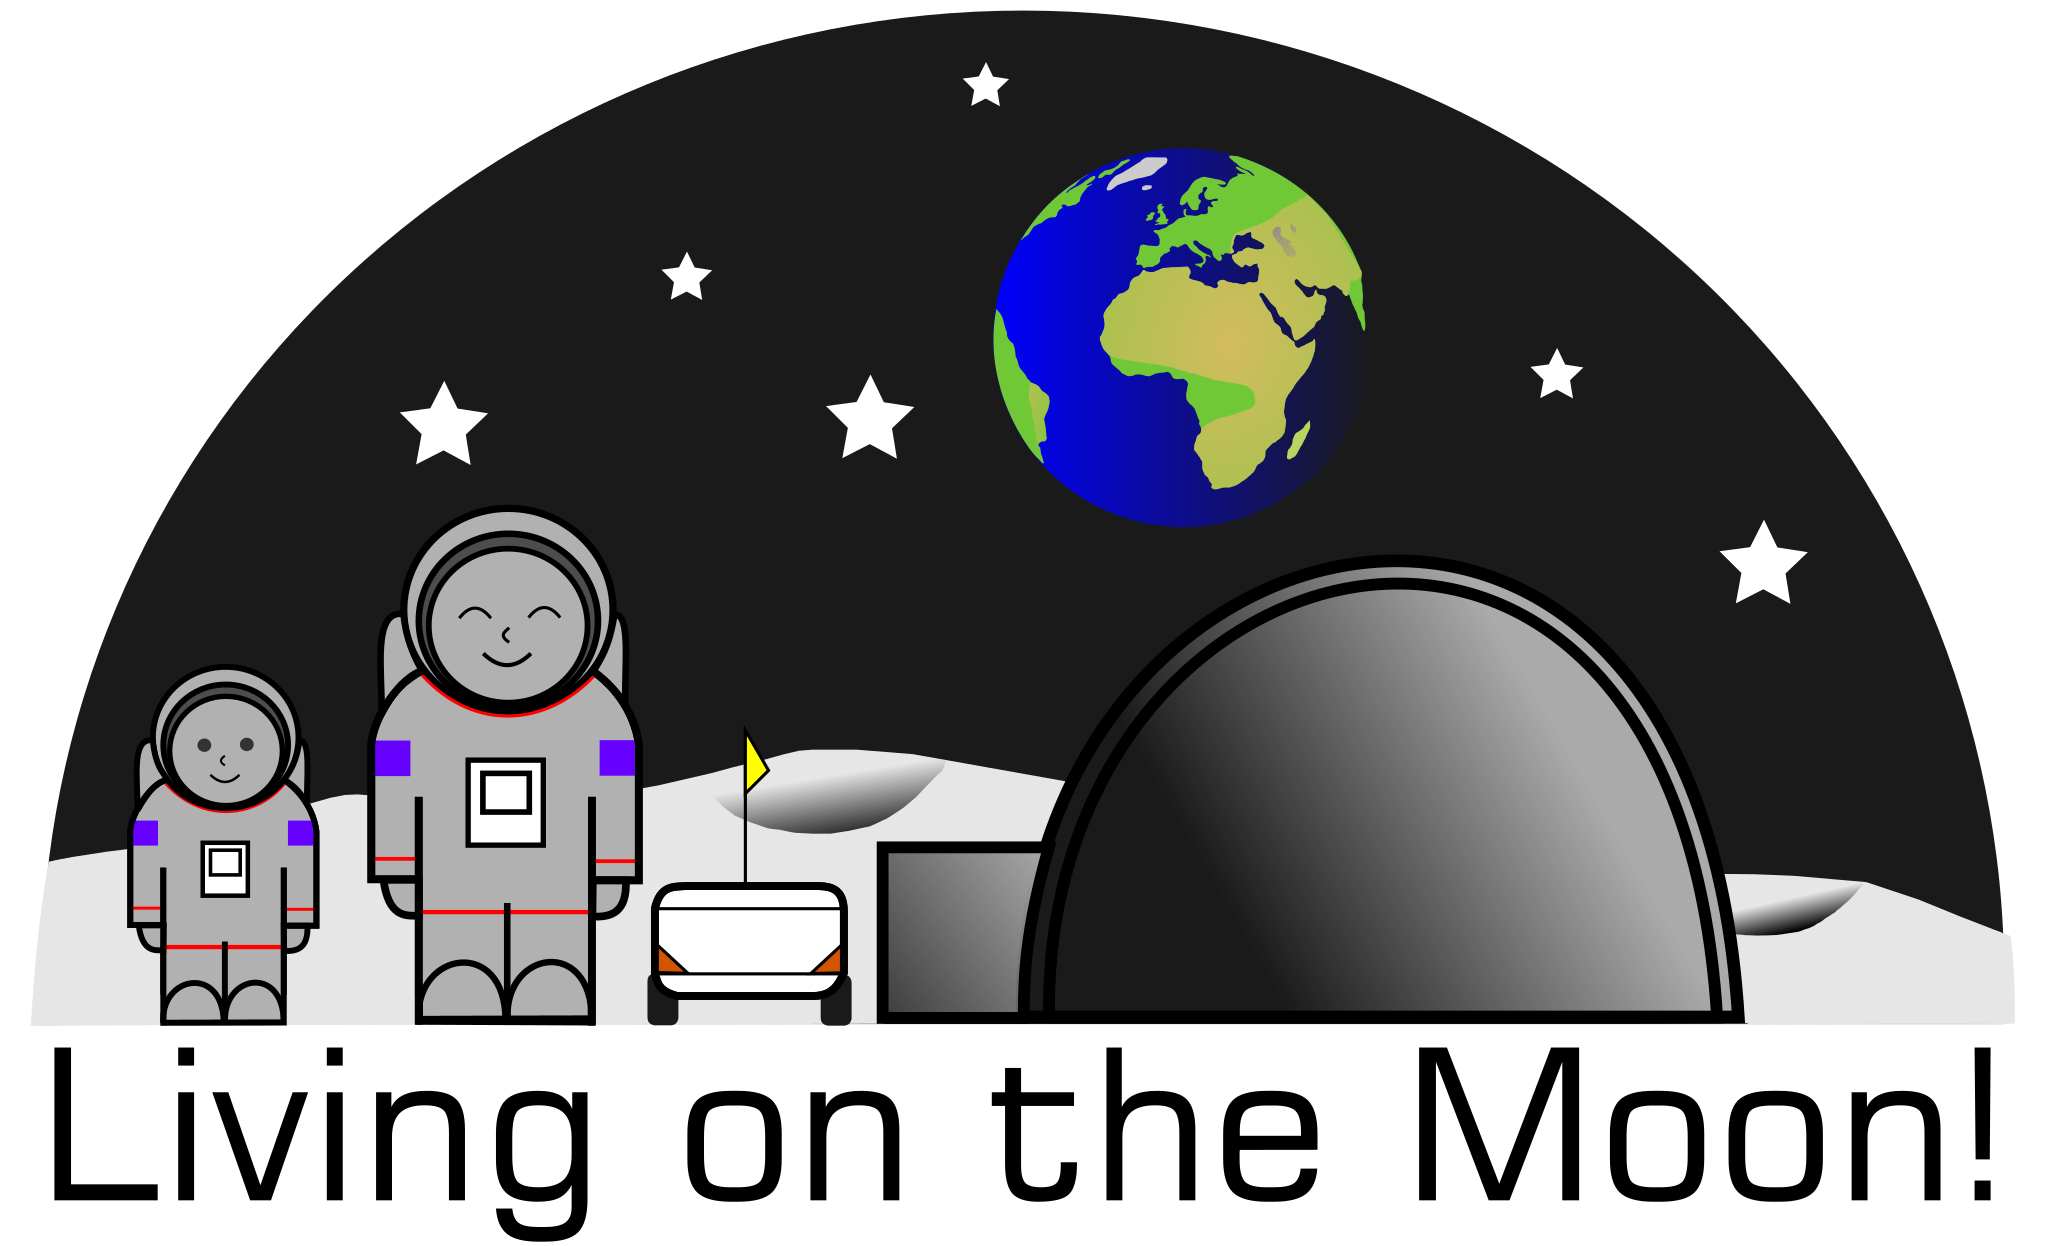 S.T.A.R.S Project Teacher CPD : Living on the Moon